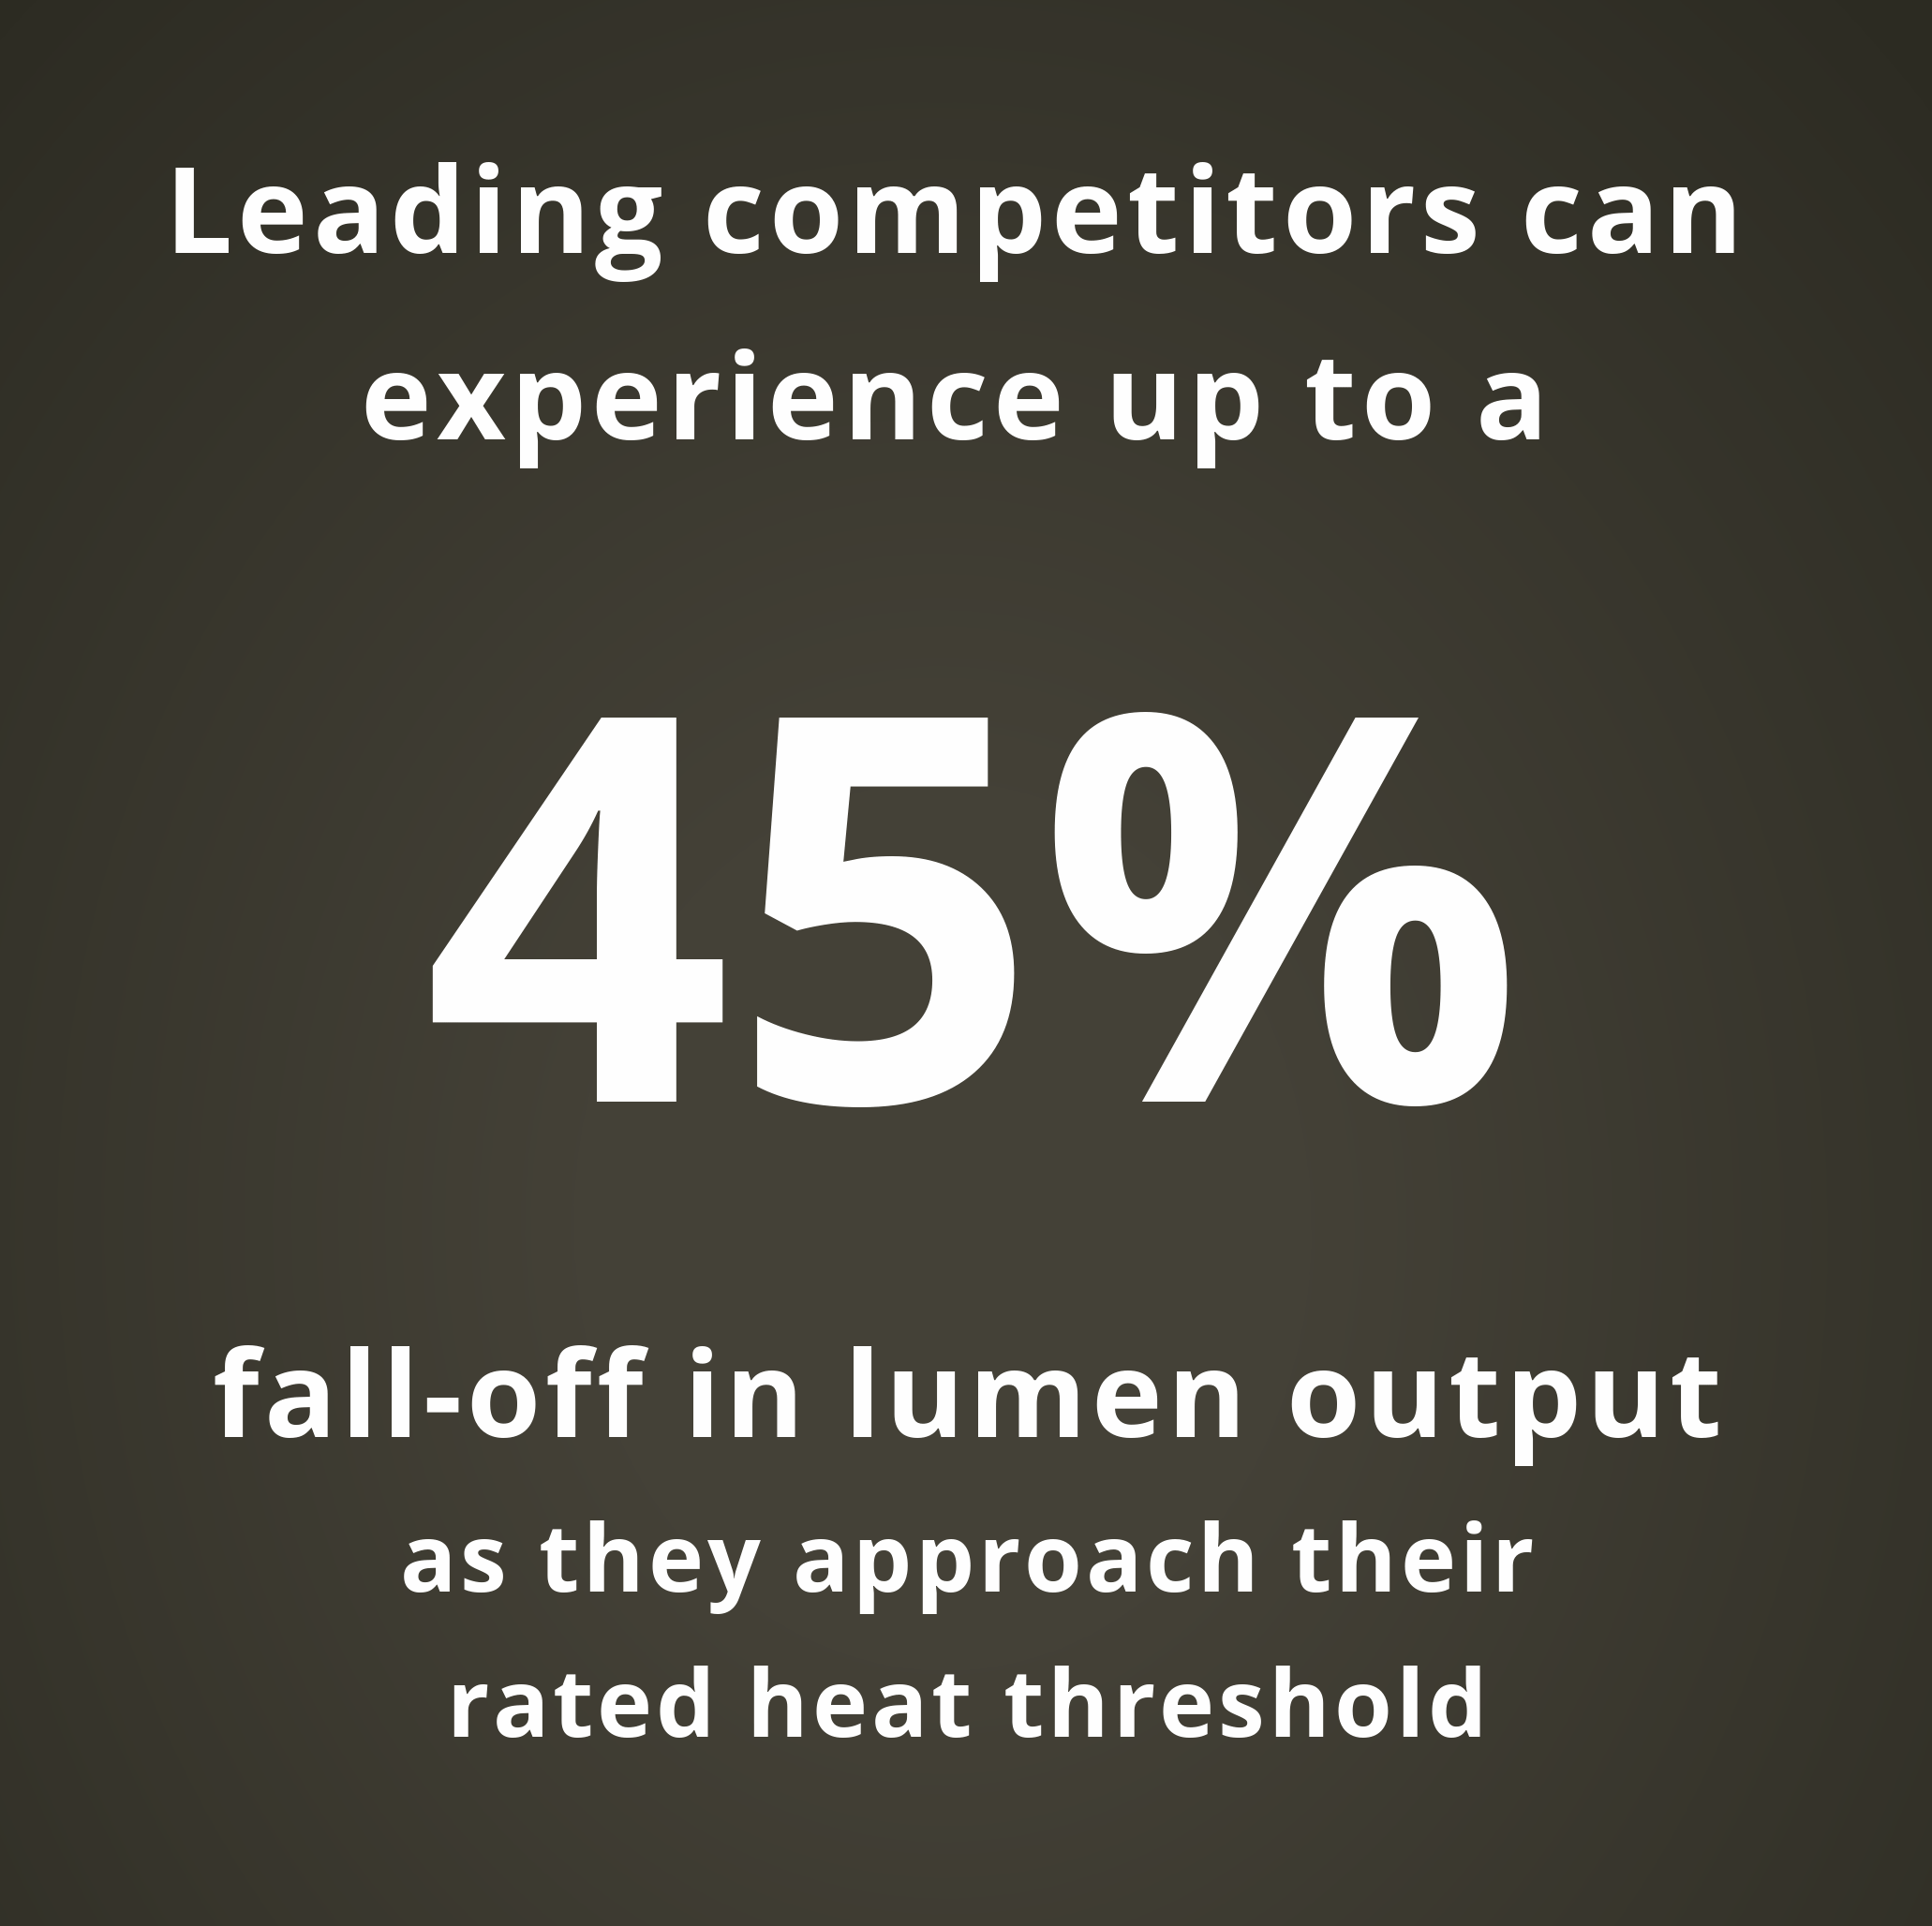 Leading competitors can experience up to a 45% fall-off in lumen output as they approach their rated heat threshold